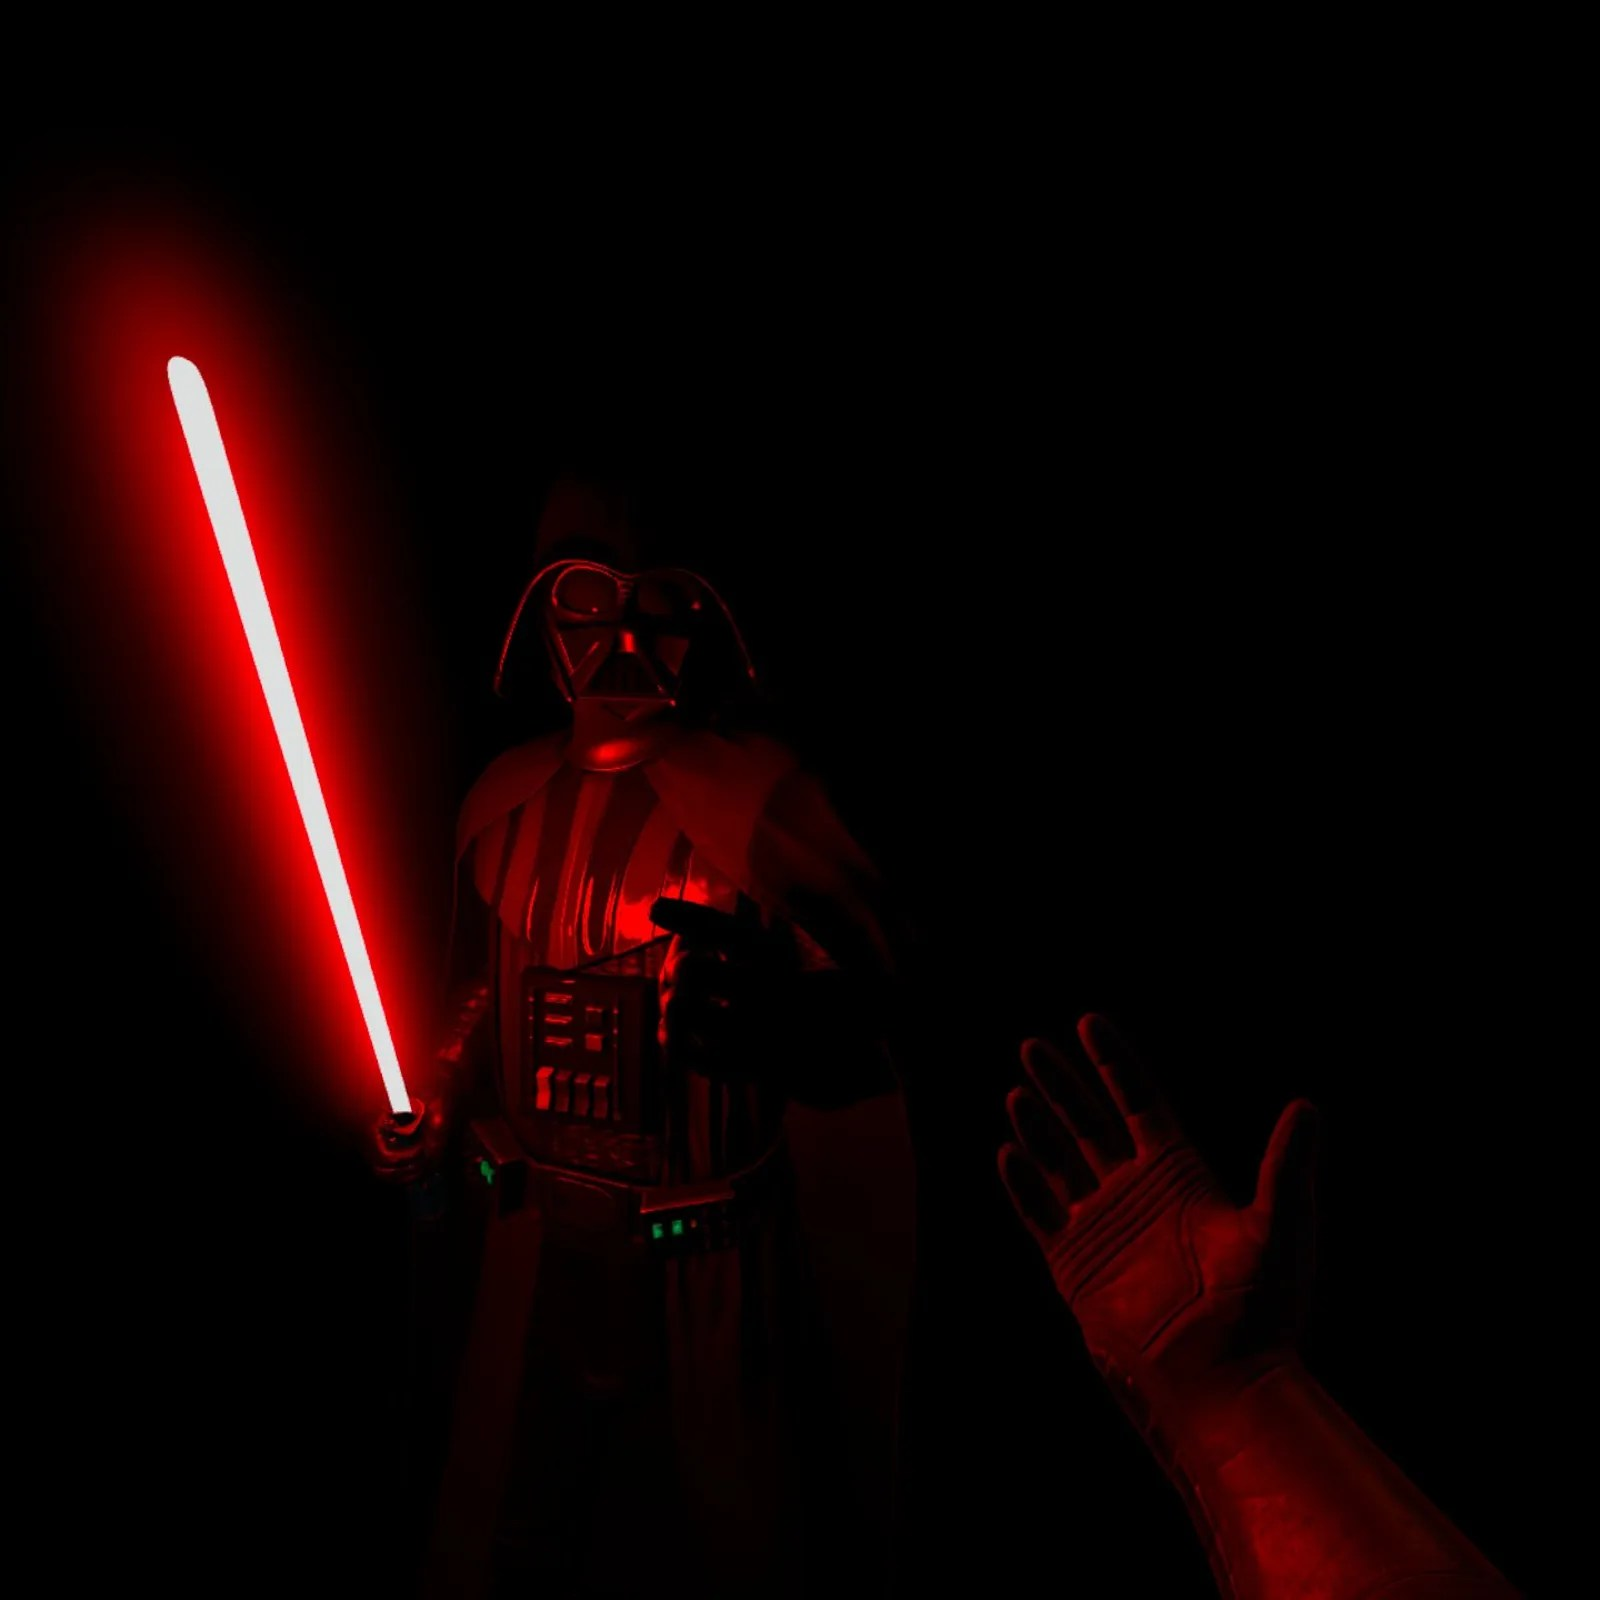 Screenshots will never do VR justice, but let's say its a lot harder to turn down the dark side when a large Sith lord is threatening you with a lightsaber.